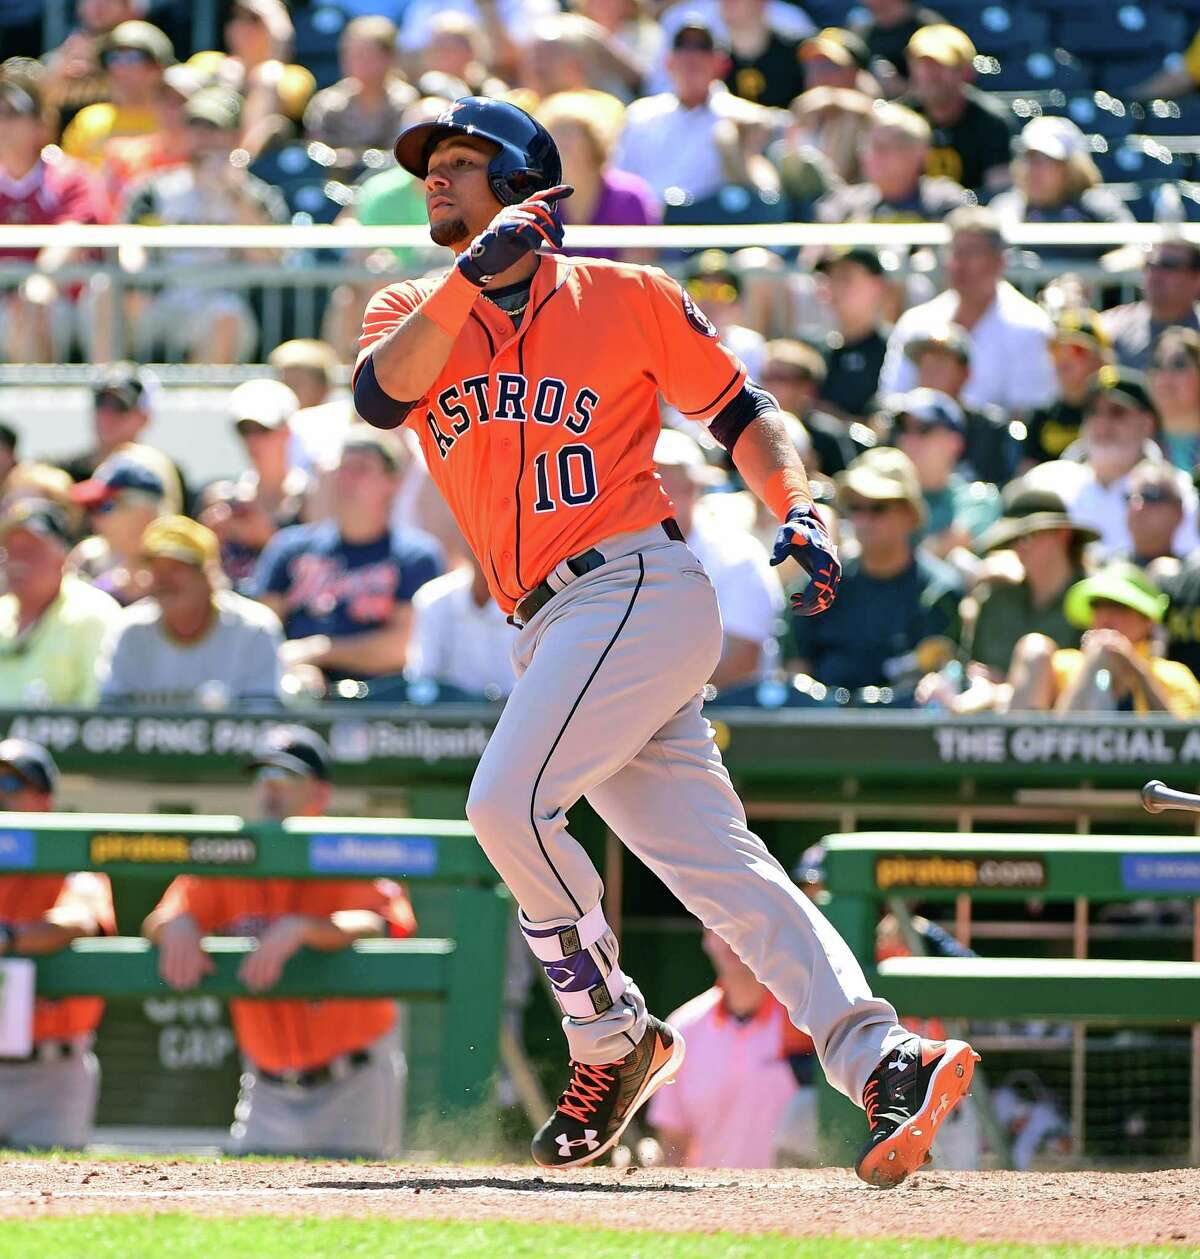 Houston Astros' Yulieski Gurriel swings at a pitch during a baseball game against the Pittsburgh Pirates in Pittsburgh, Wednesday, Aug. 24, 2016. (AP Photo/Fred Vuich)